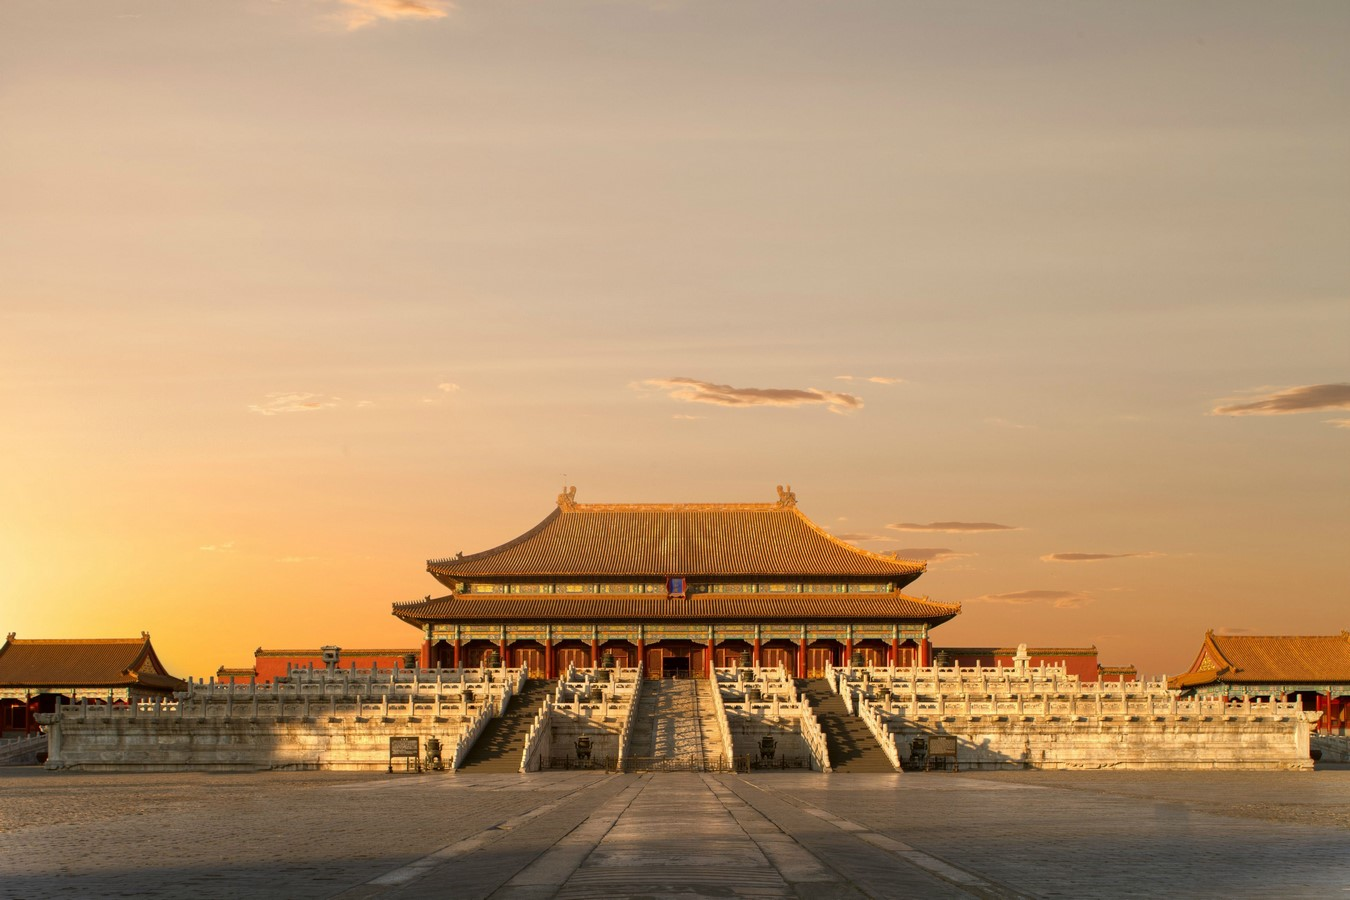 10 Things you didn't know about Forbidden City, Beijing - Sheet9